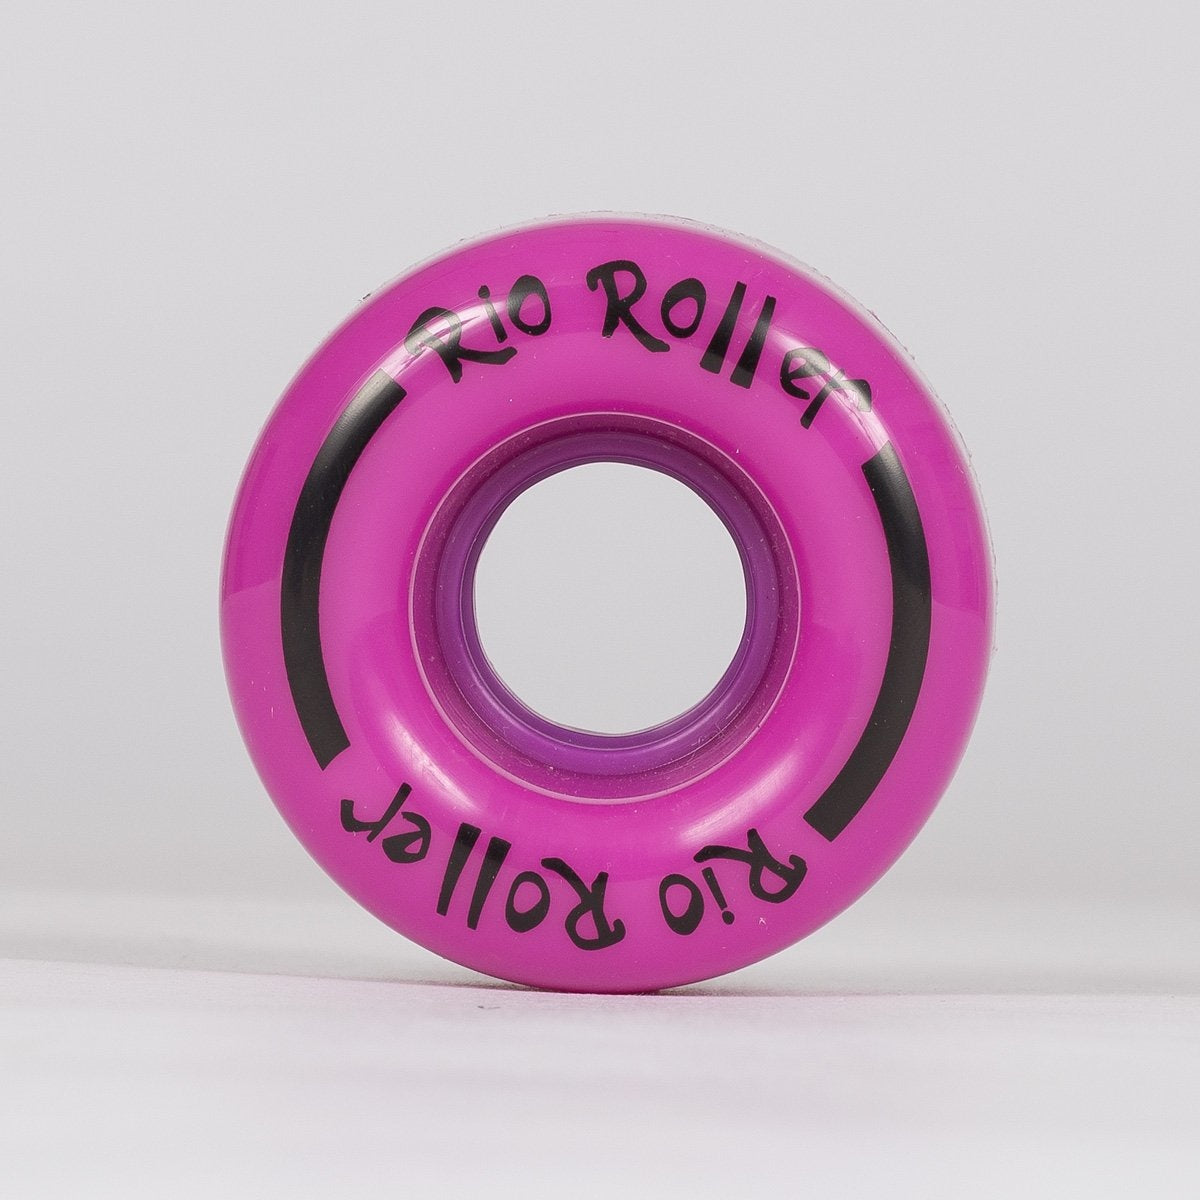 Rio Roller Coaster Wheels x4 Purple 58mm - Skates